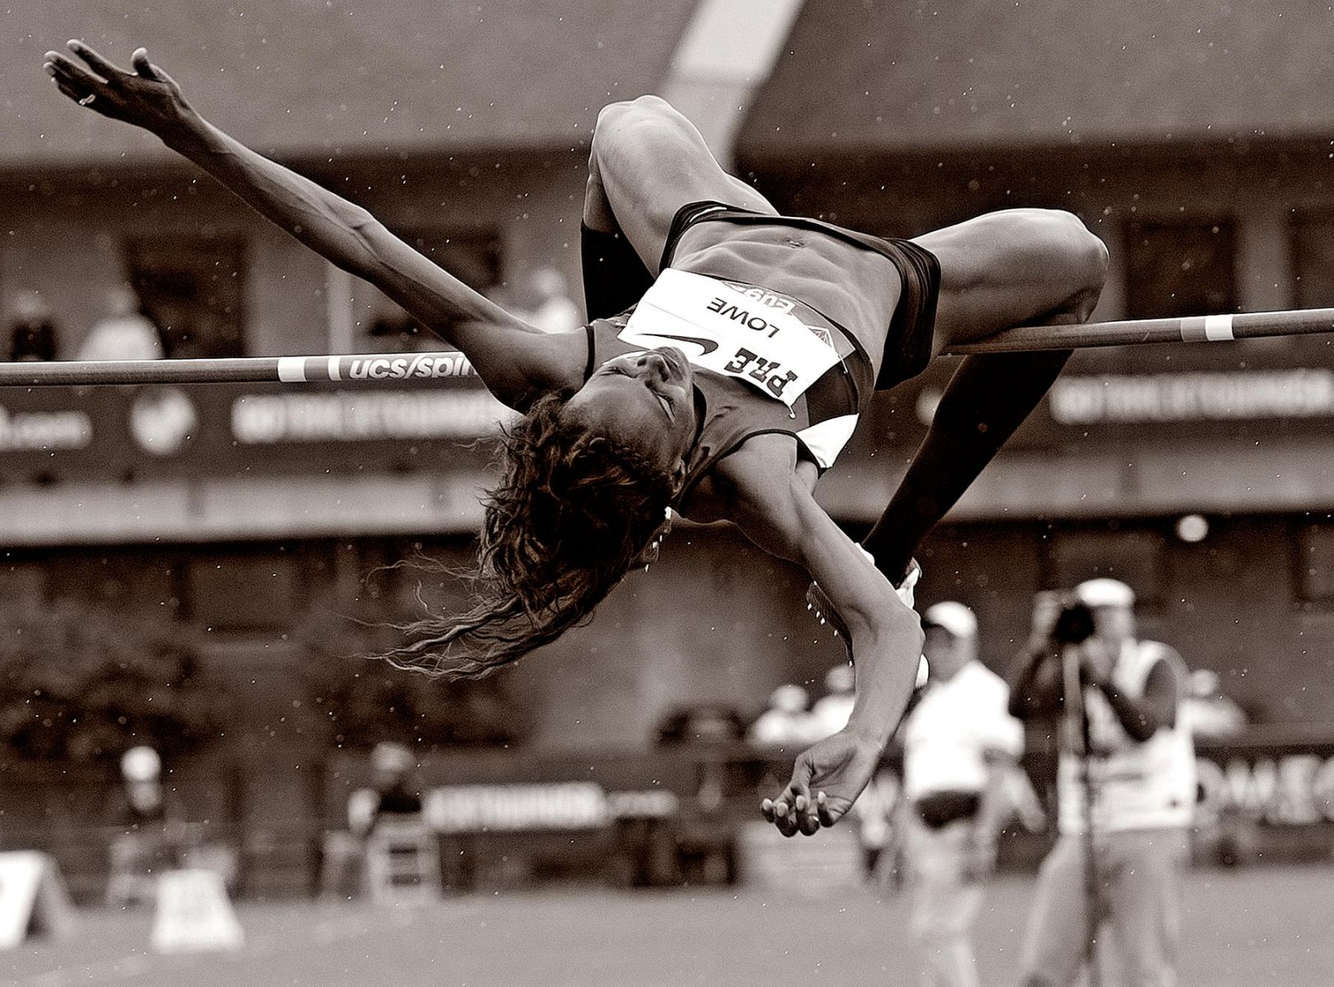 1ustrials2012_chaunte_lowe_bw_track_and_field_image_jeff_cohen_photography_lb.jpg